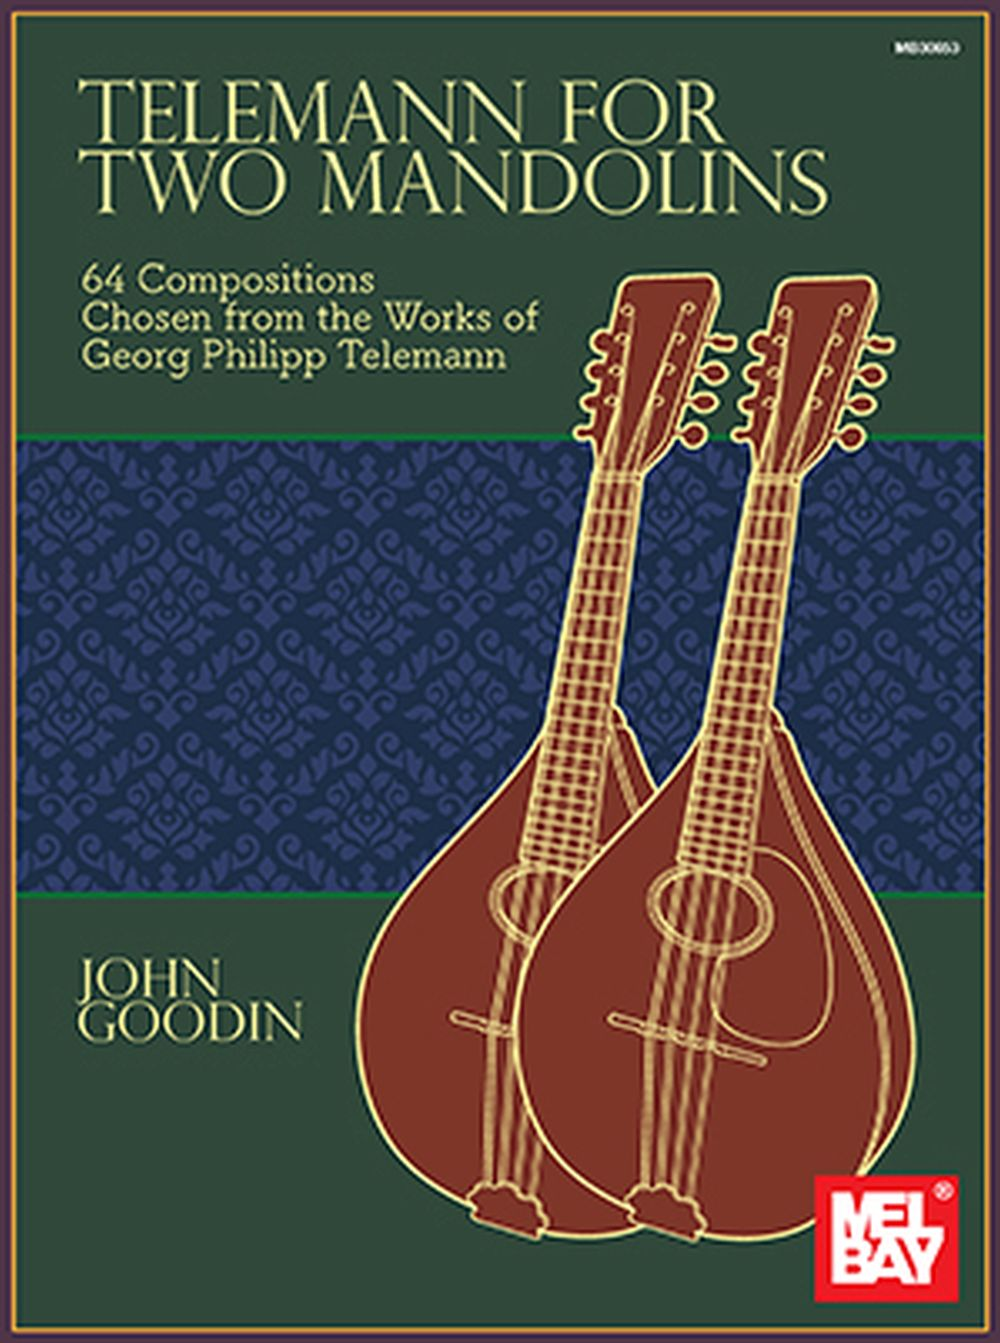 John Goodin: Telemann for Two Mandolins: Mandolin